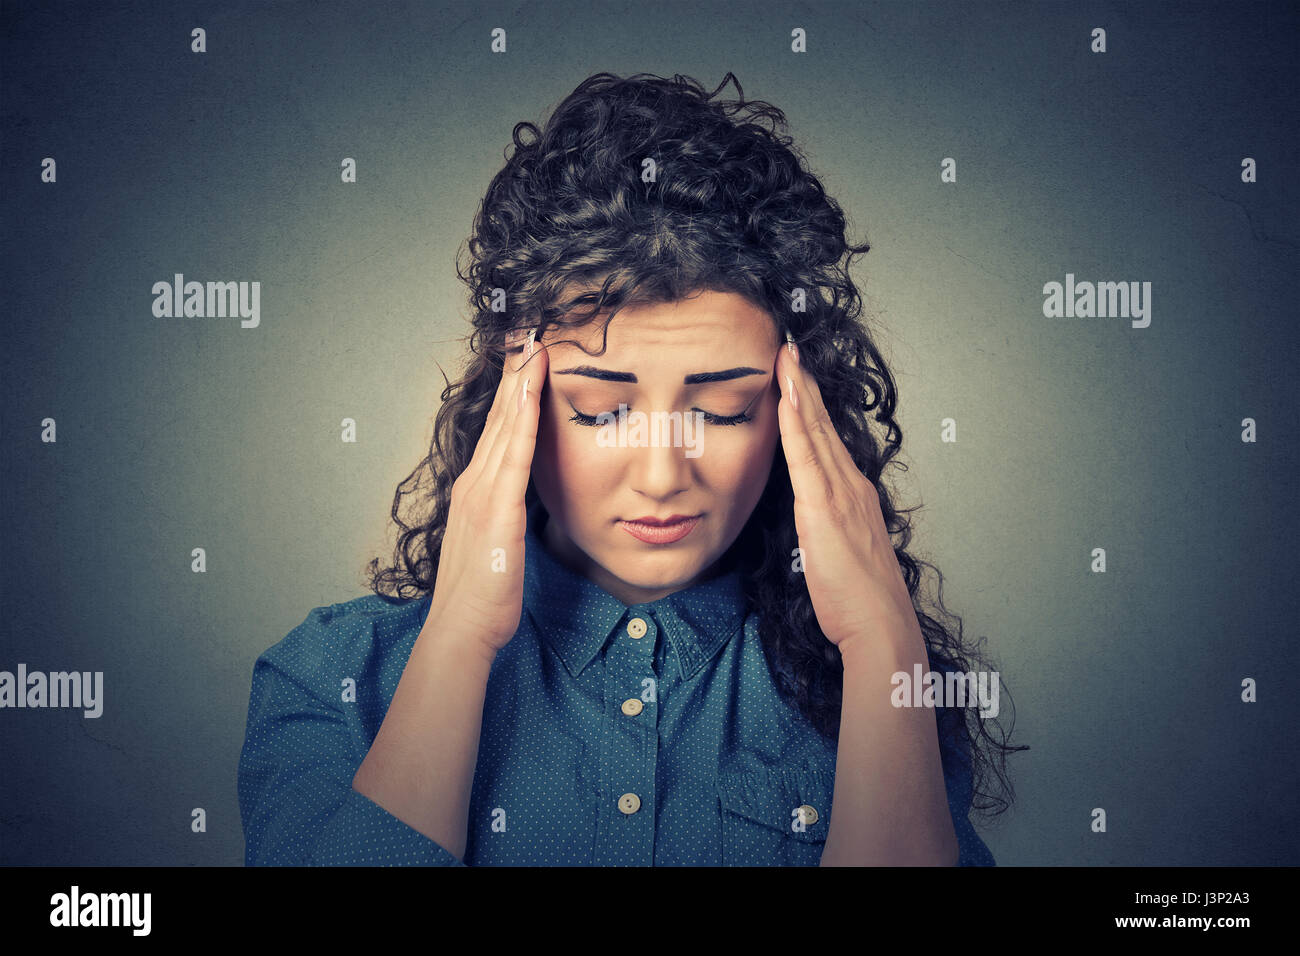 Closeup sad young woman with worried stressed face expression having headache isolated on gray wall background. - Stock Image